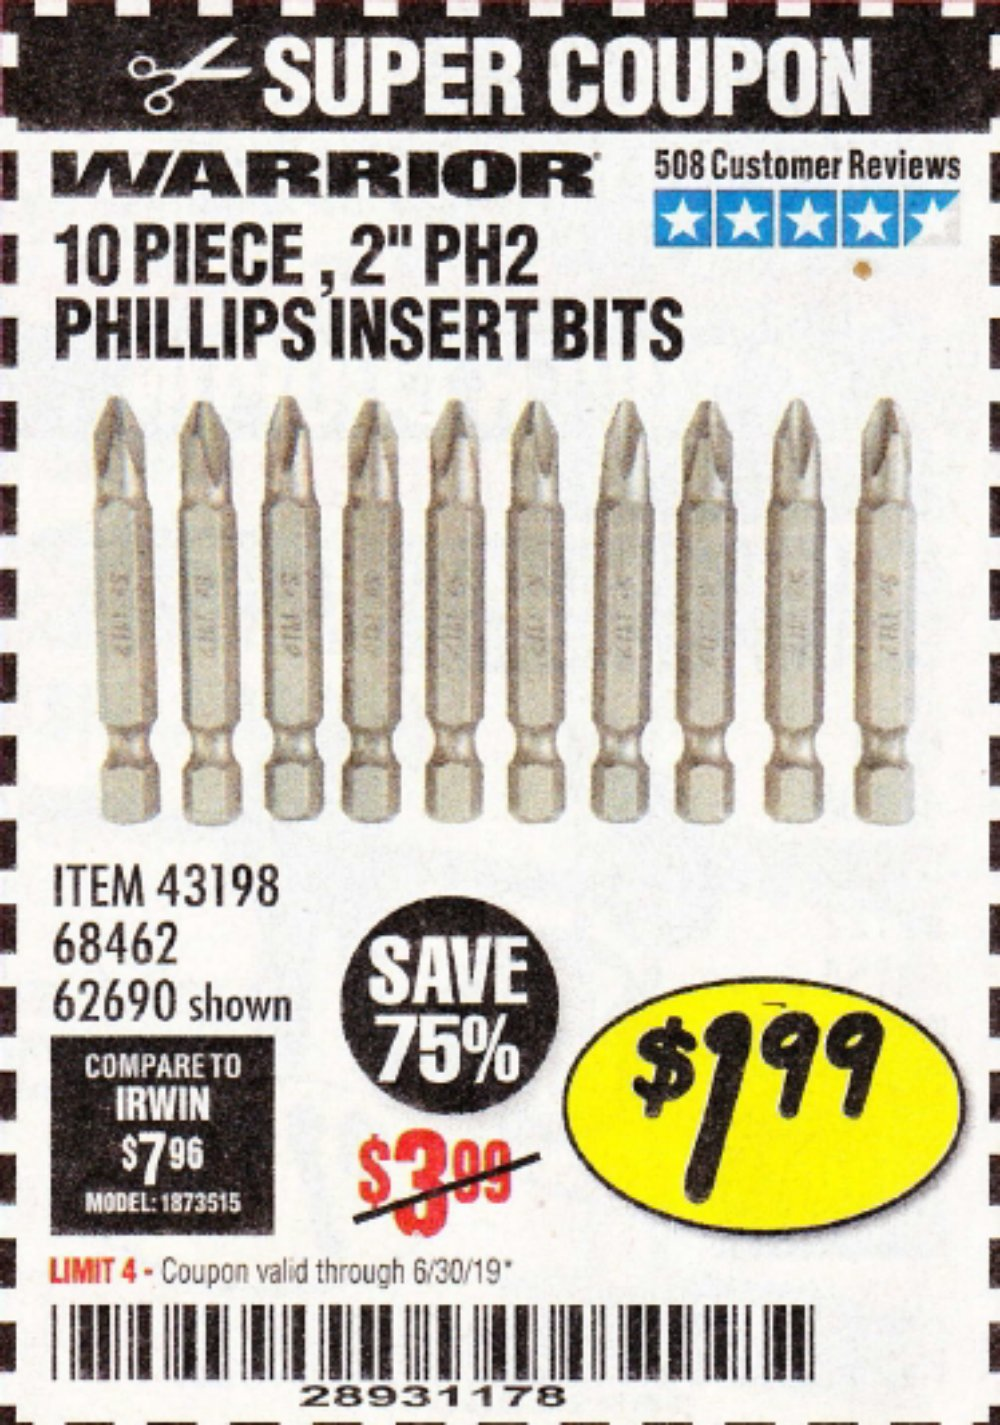 Harbor Freight Coupon, HF Coupons - 68462